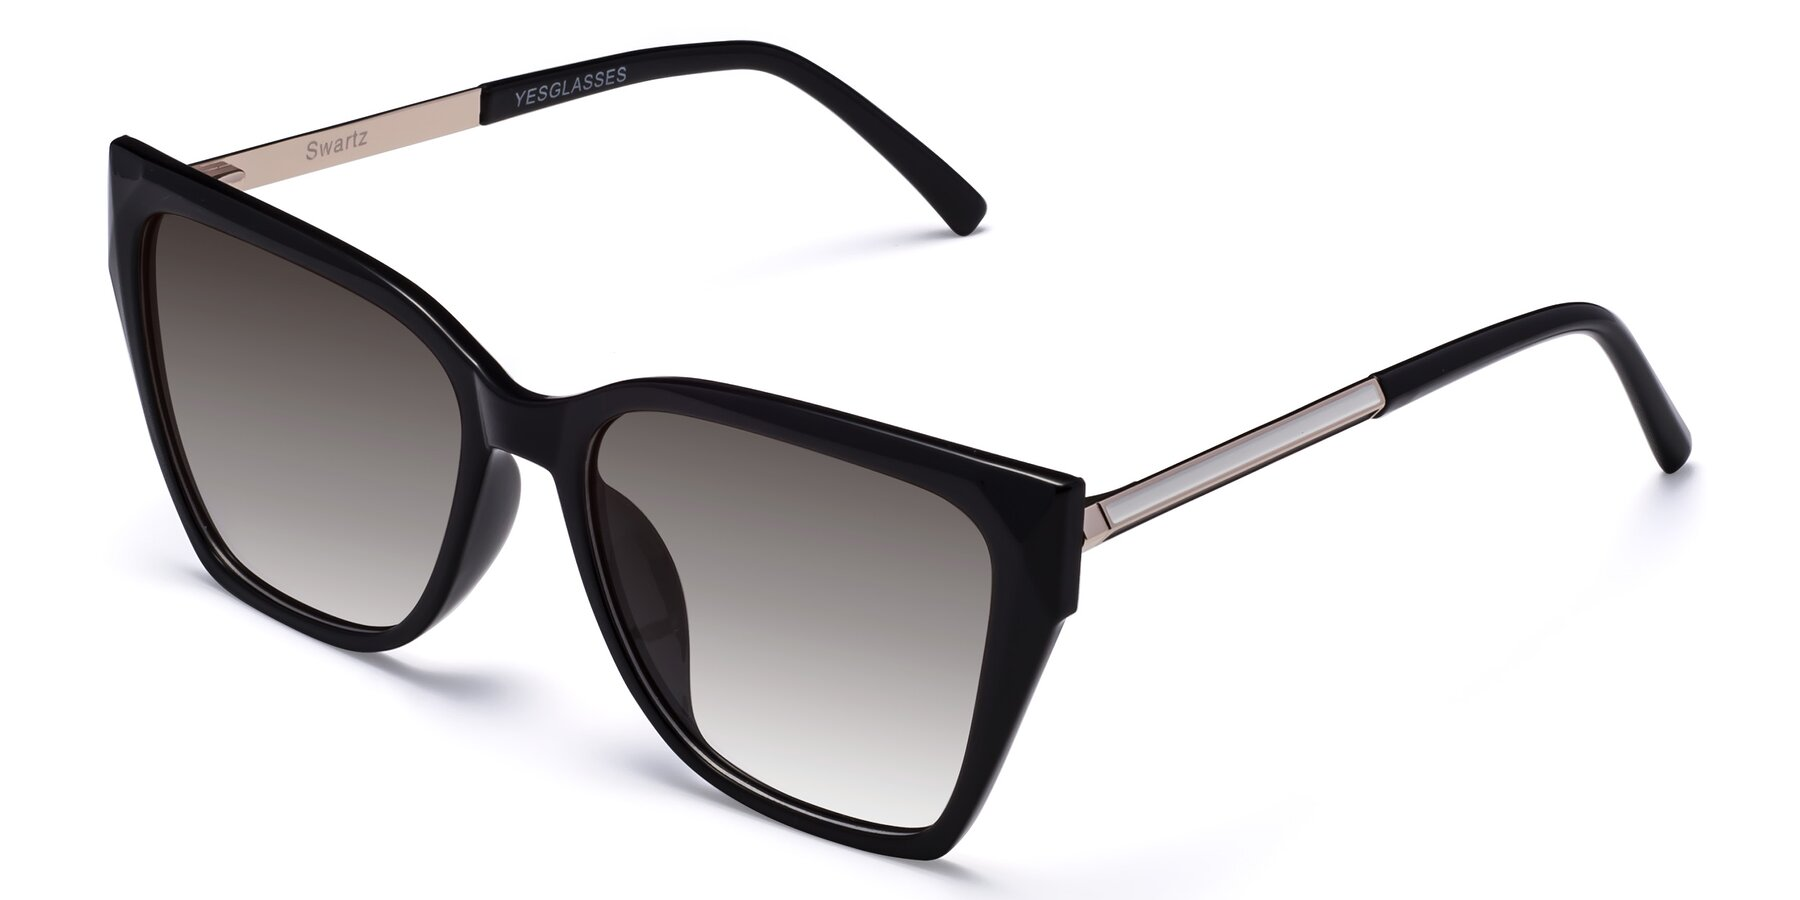 Angle of Swartz in Black with Gray Gradient Lenses